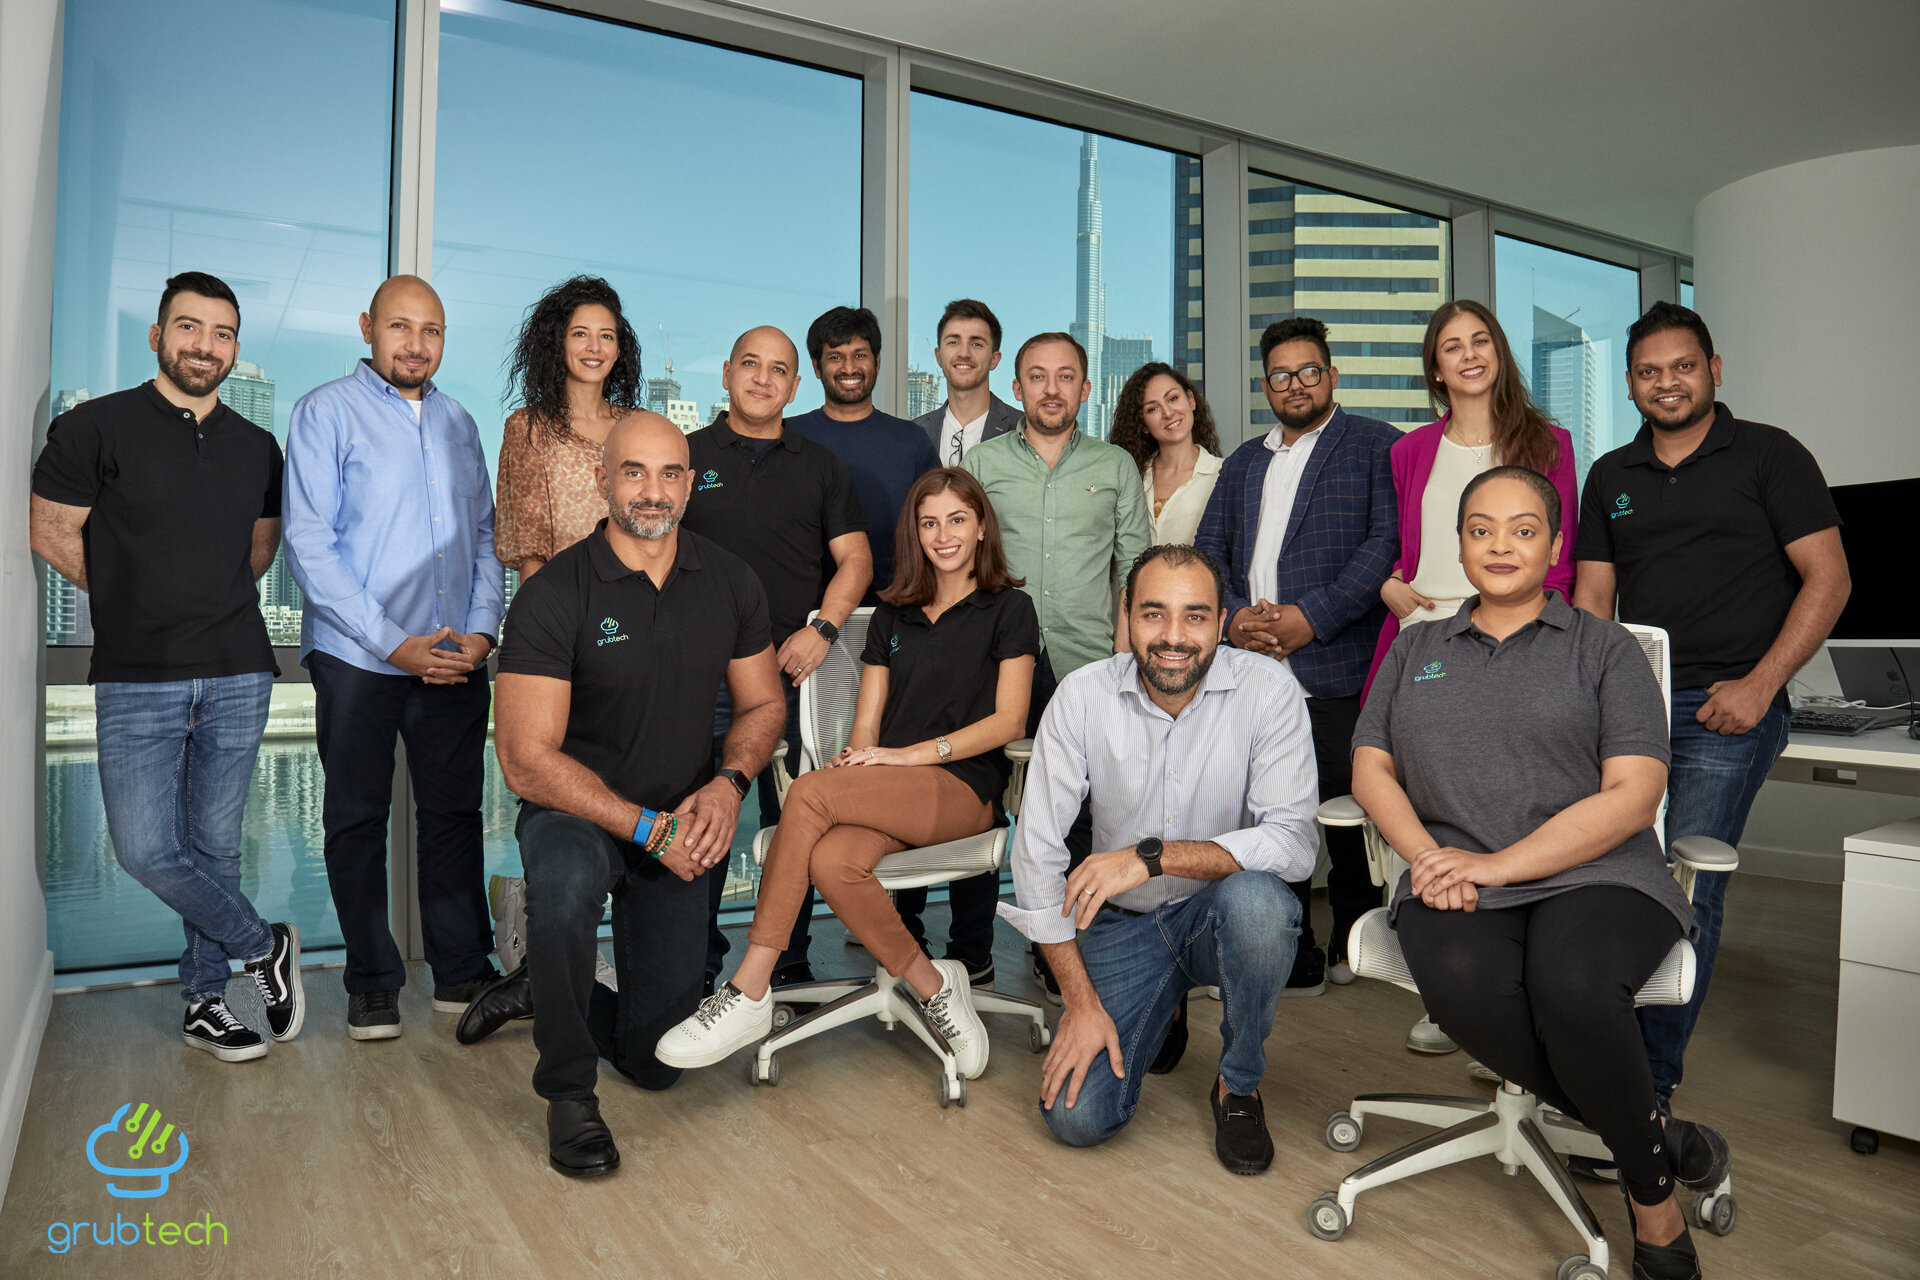 dubai-based-grubtech-secures-34-million-in-pre-series-a-funding-